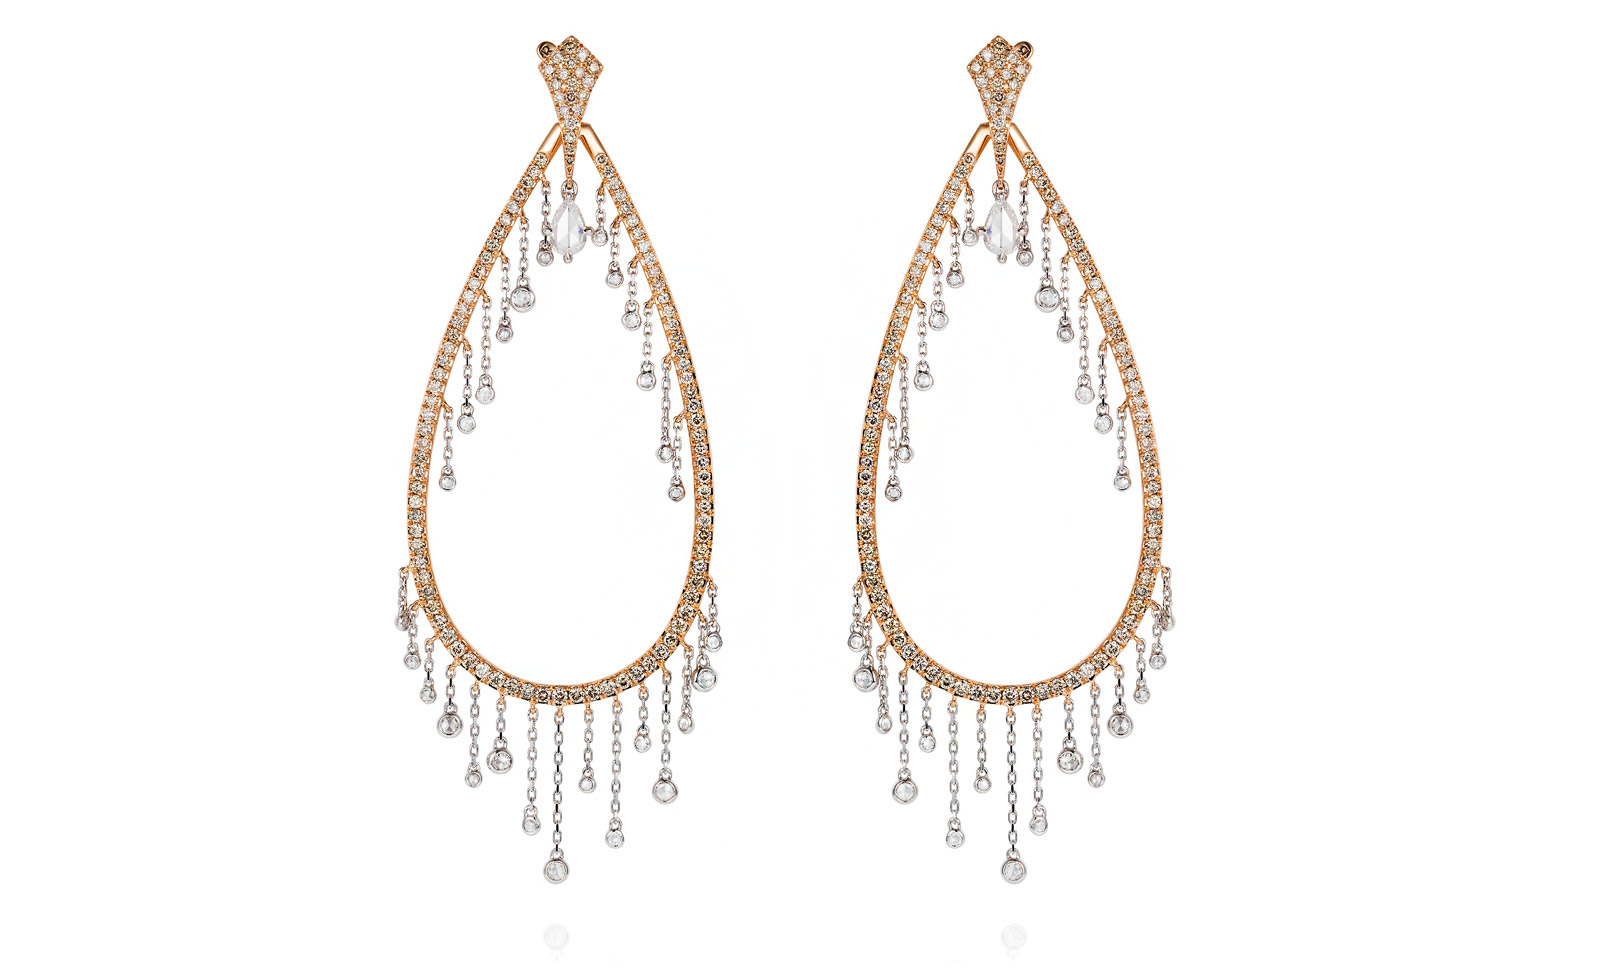 Mike Joseph Waterfall earrings in rose gold and diamonds